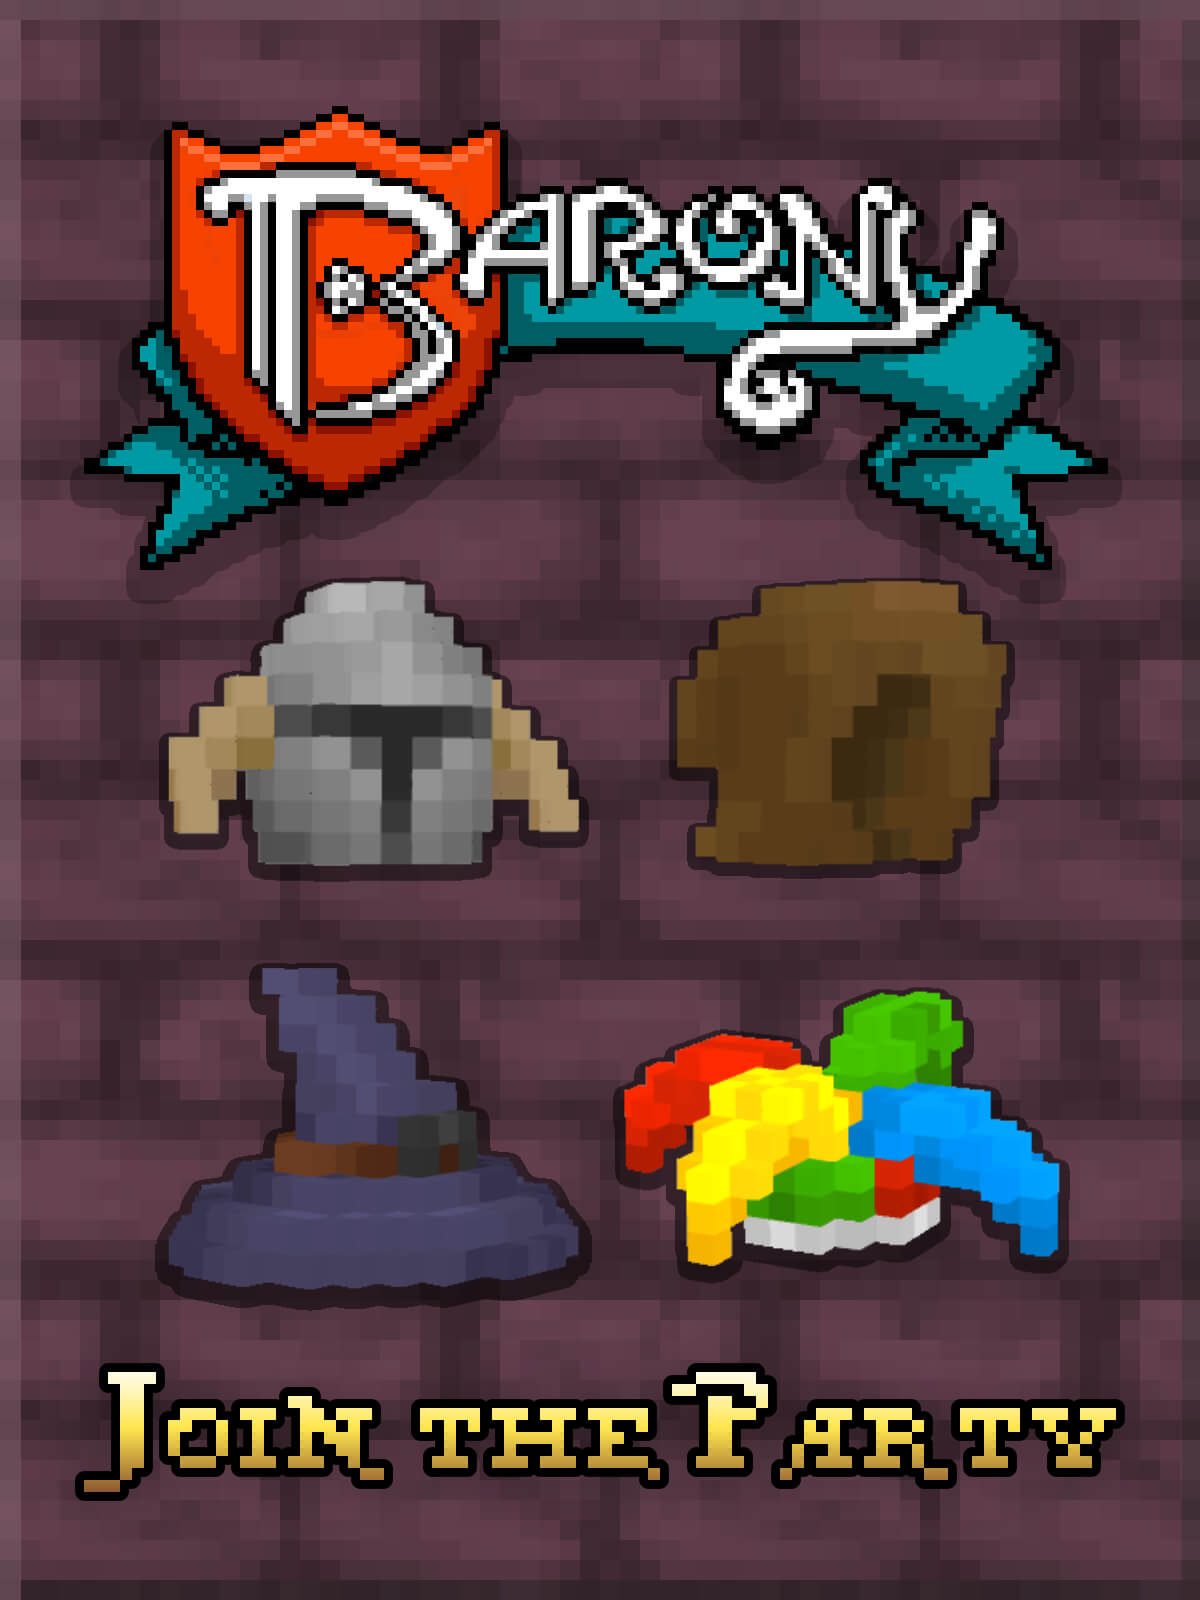 Barony - Join the Party in Barony! Go on challenging dungeon runs with friends in this first-person roguelike RPG